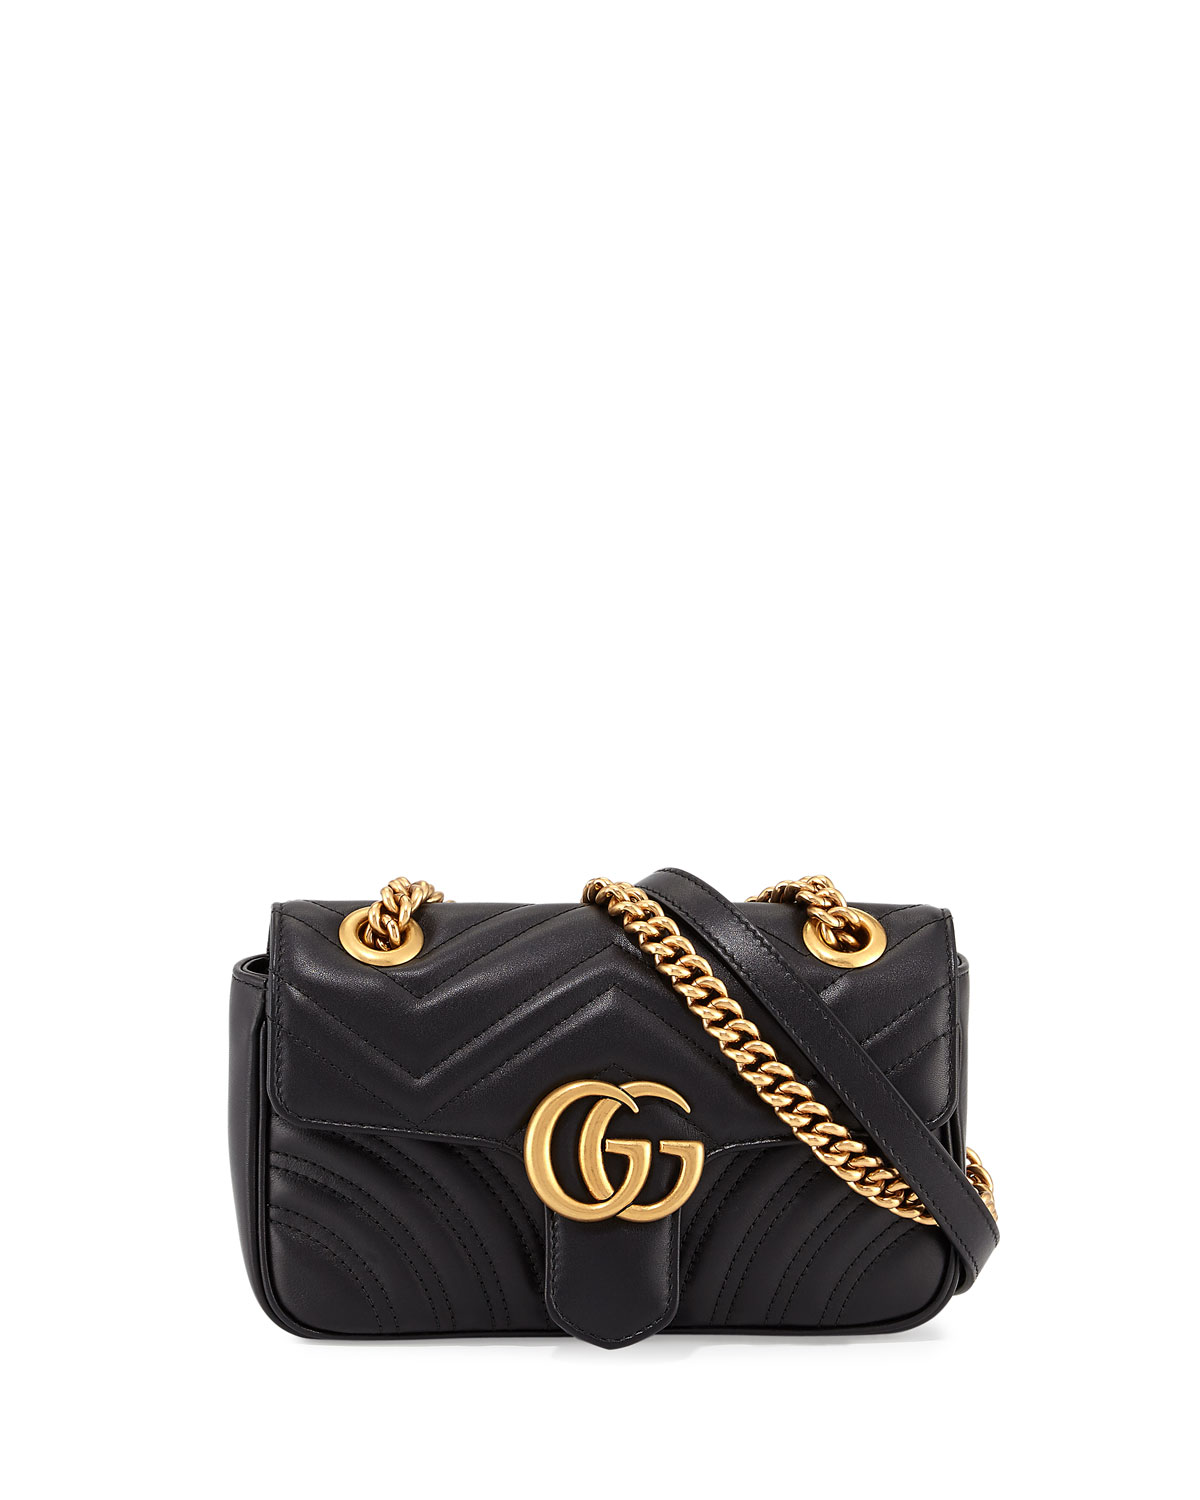 2678840e08d Gucci GG Marmont 2.0 Mini Quilted Leather Crossbody Bag